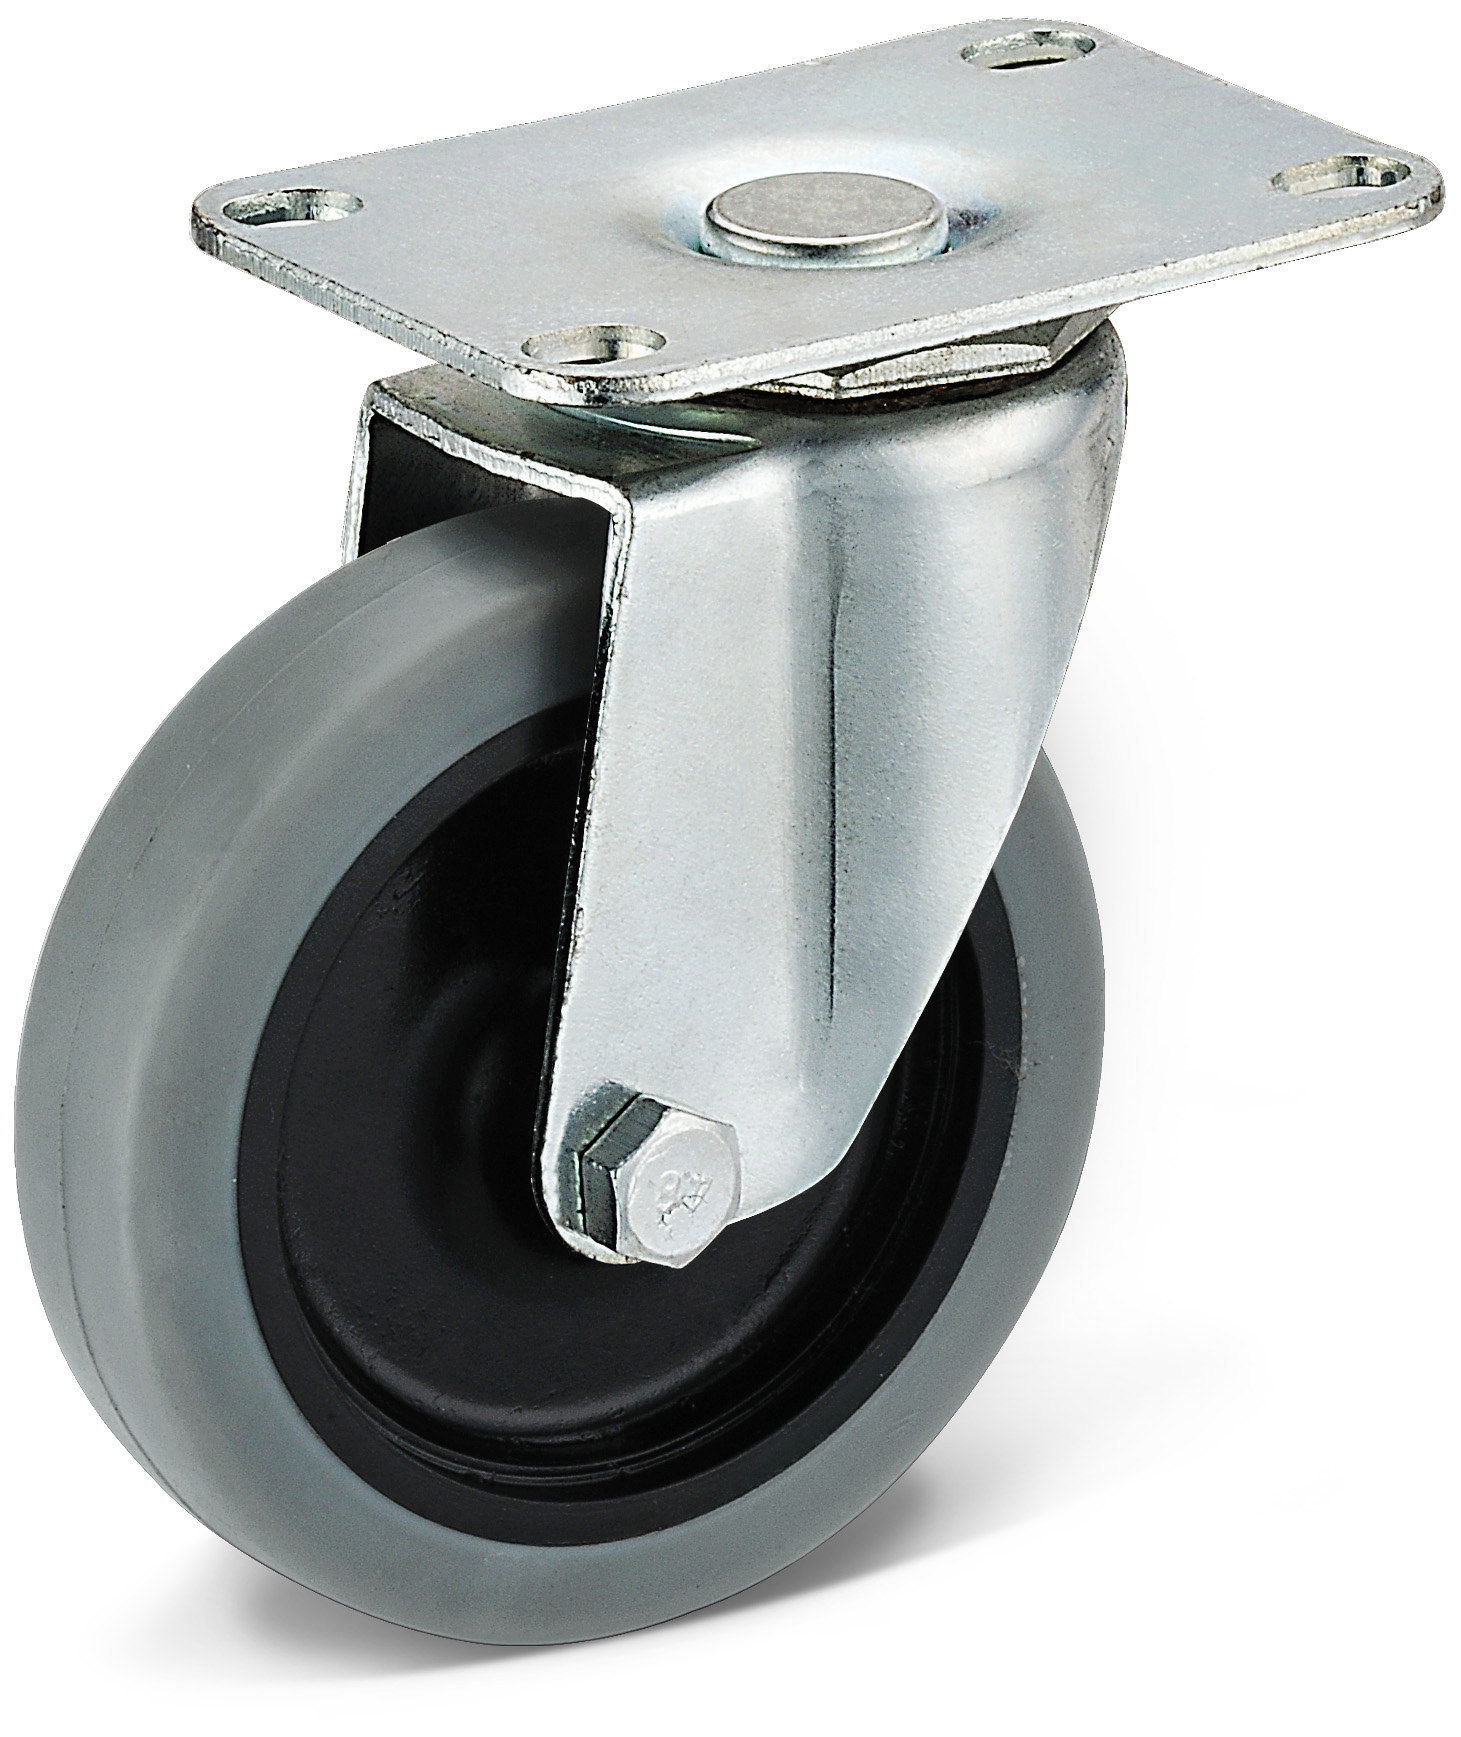 Hospital Bed Casters Flexible and quiet